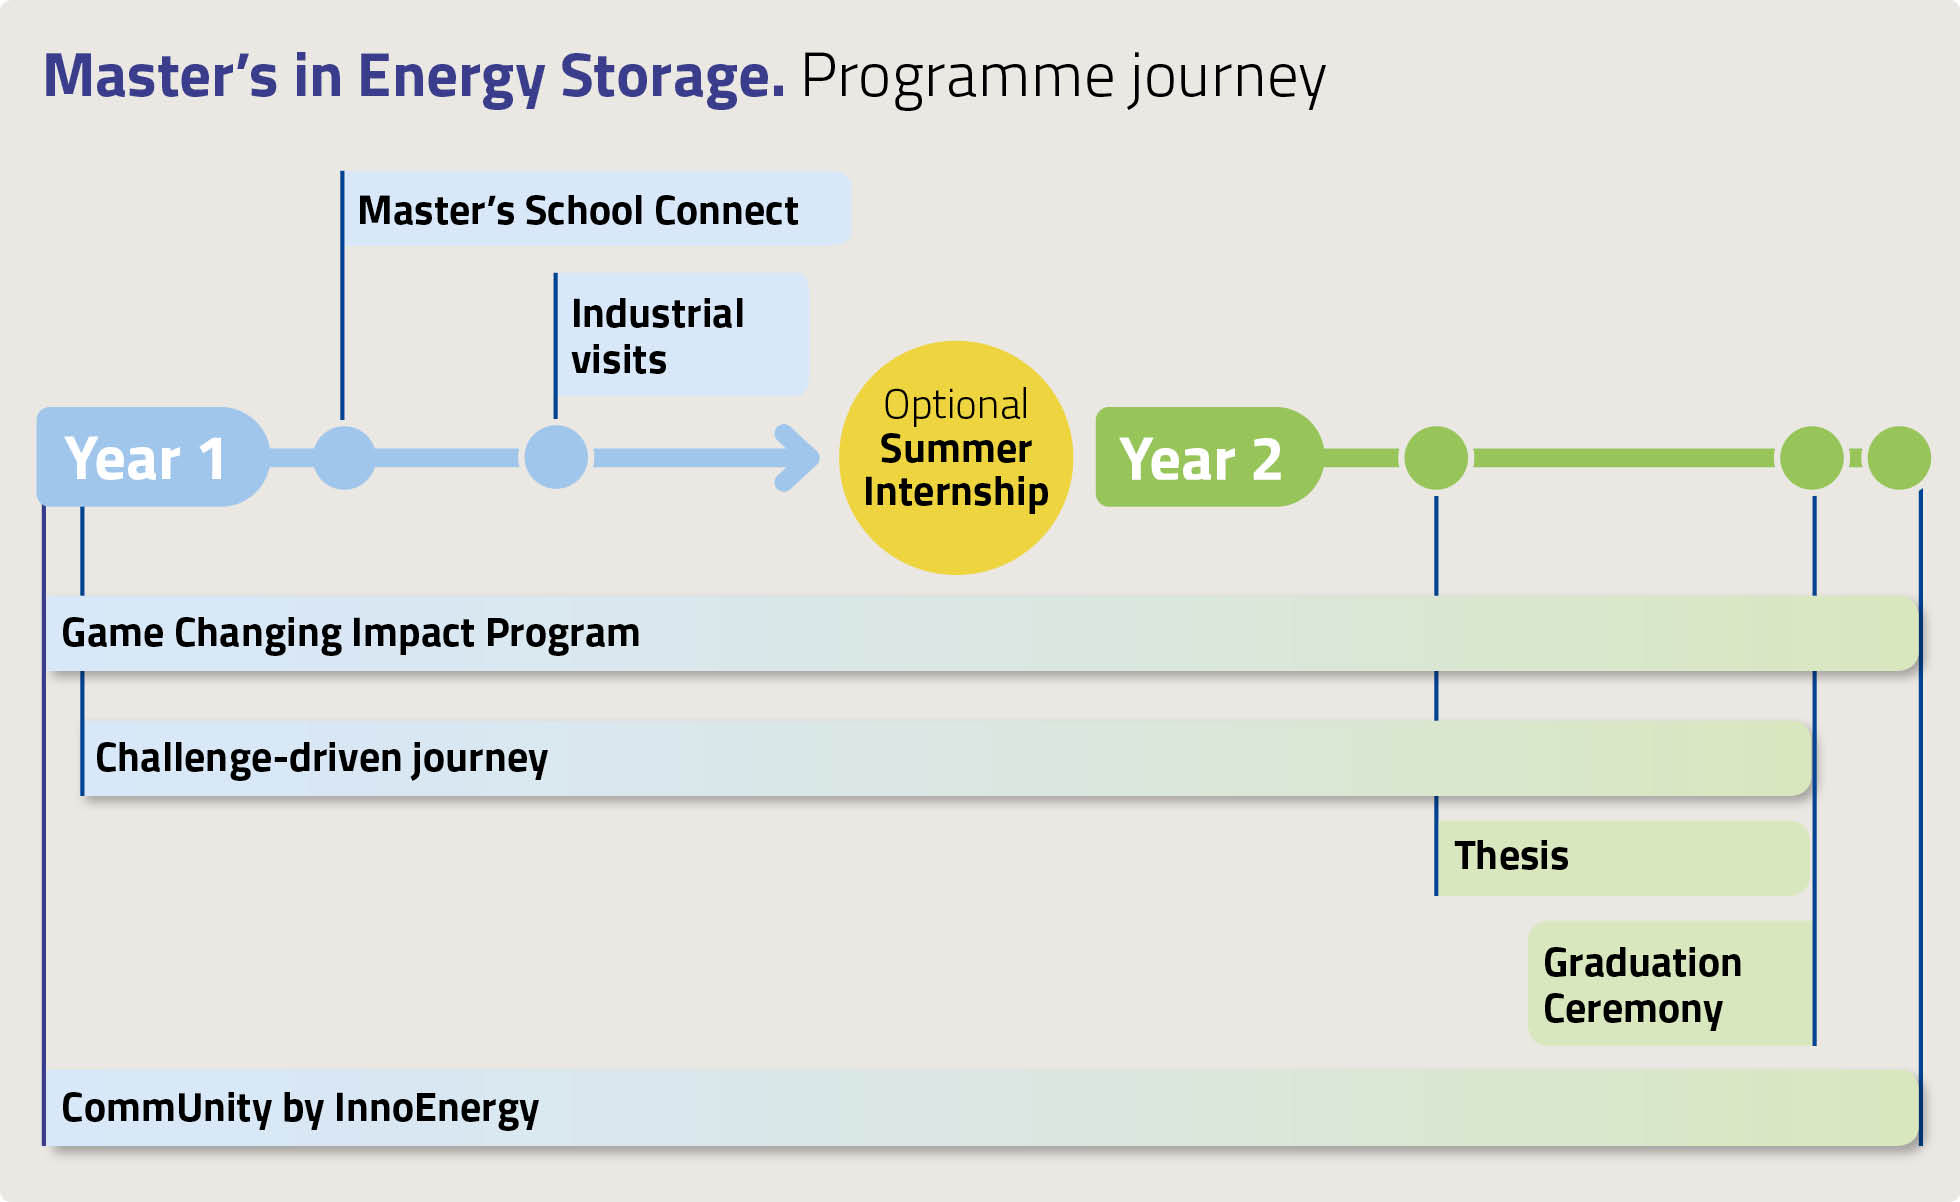 Master's in Energy Storage